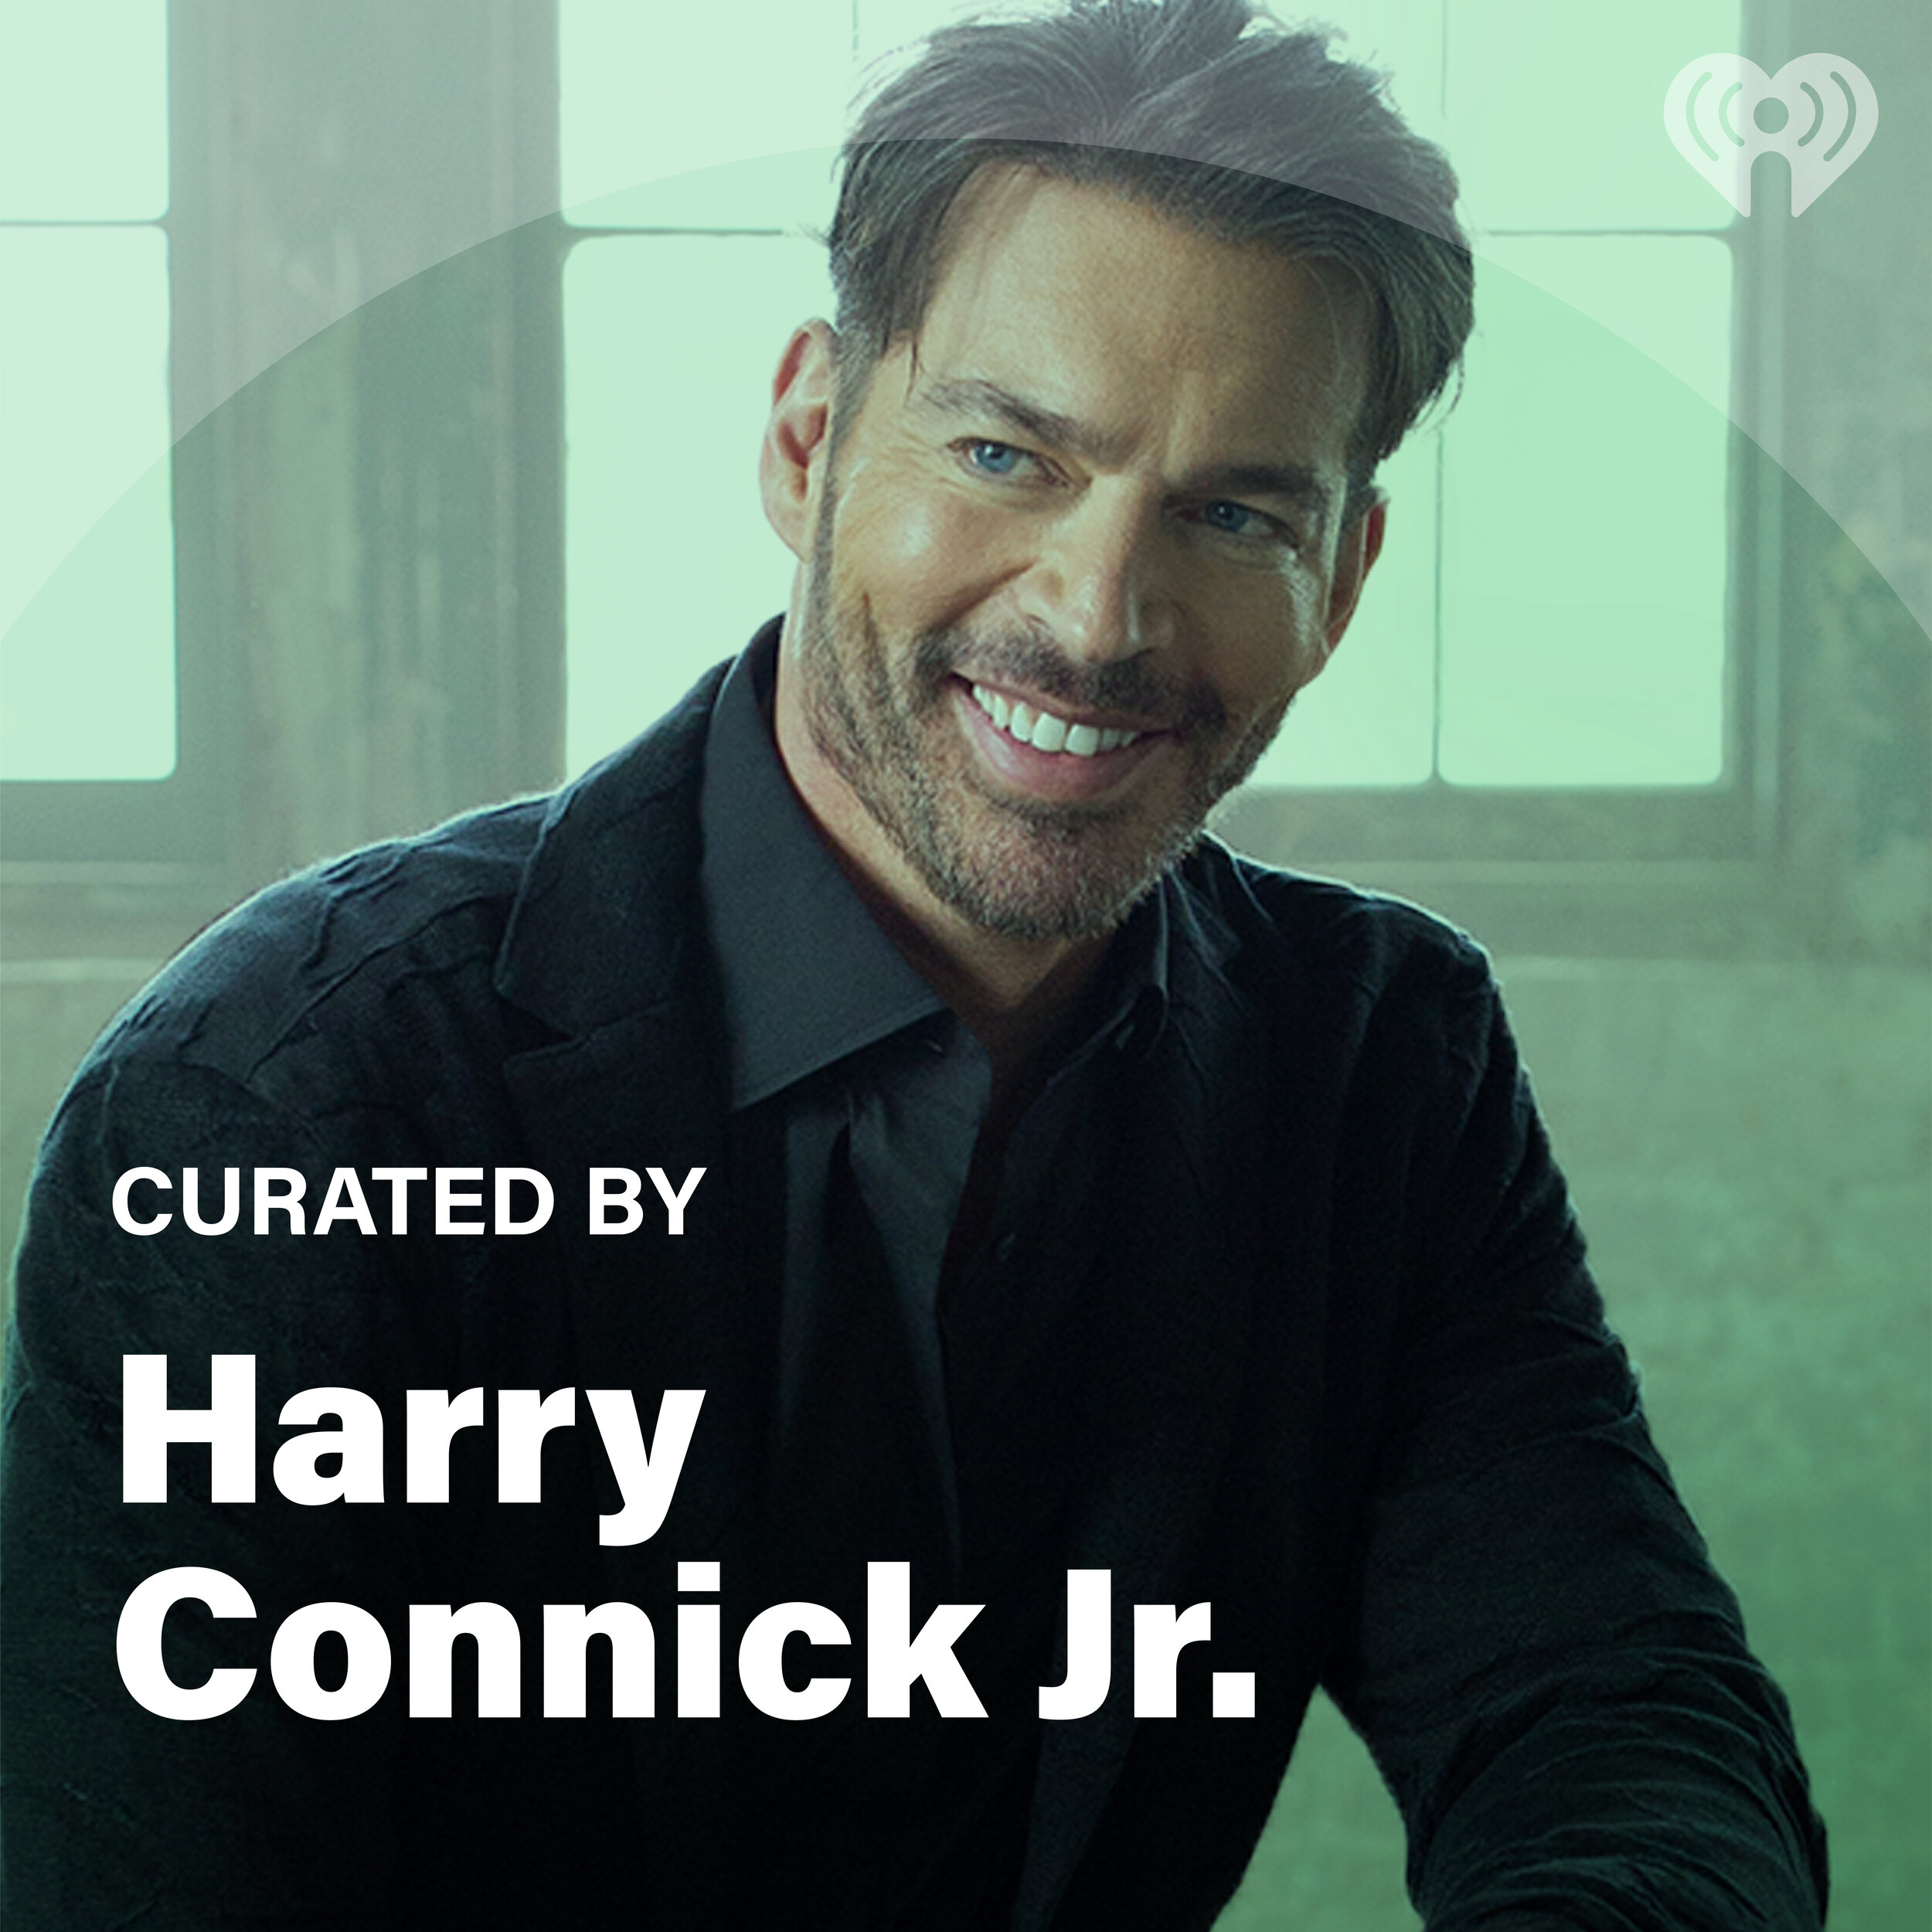 Curated By: Harry Connick, Jr.